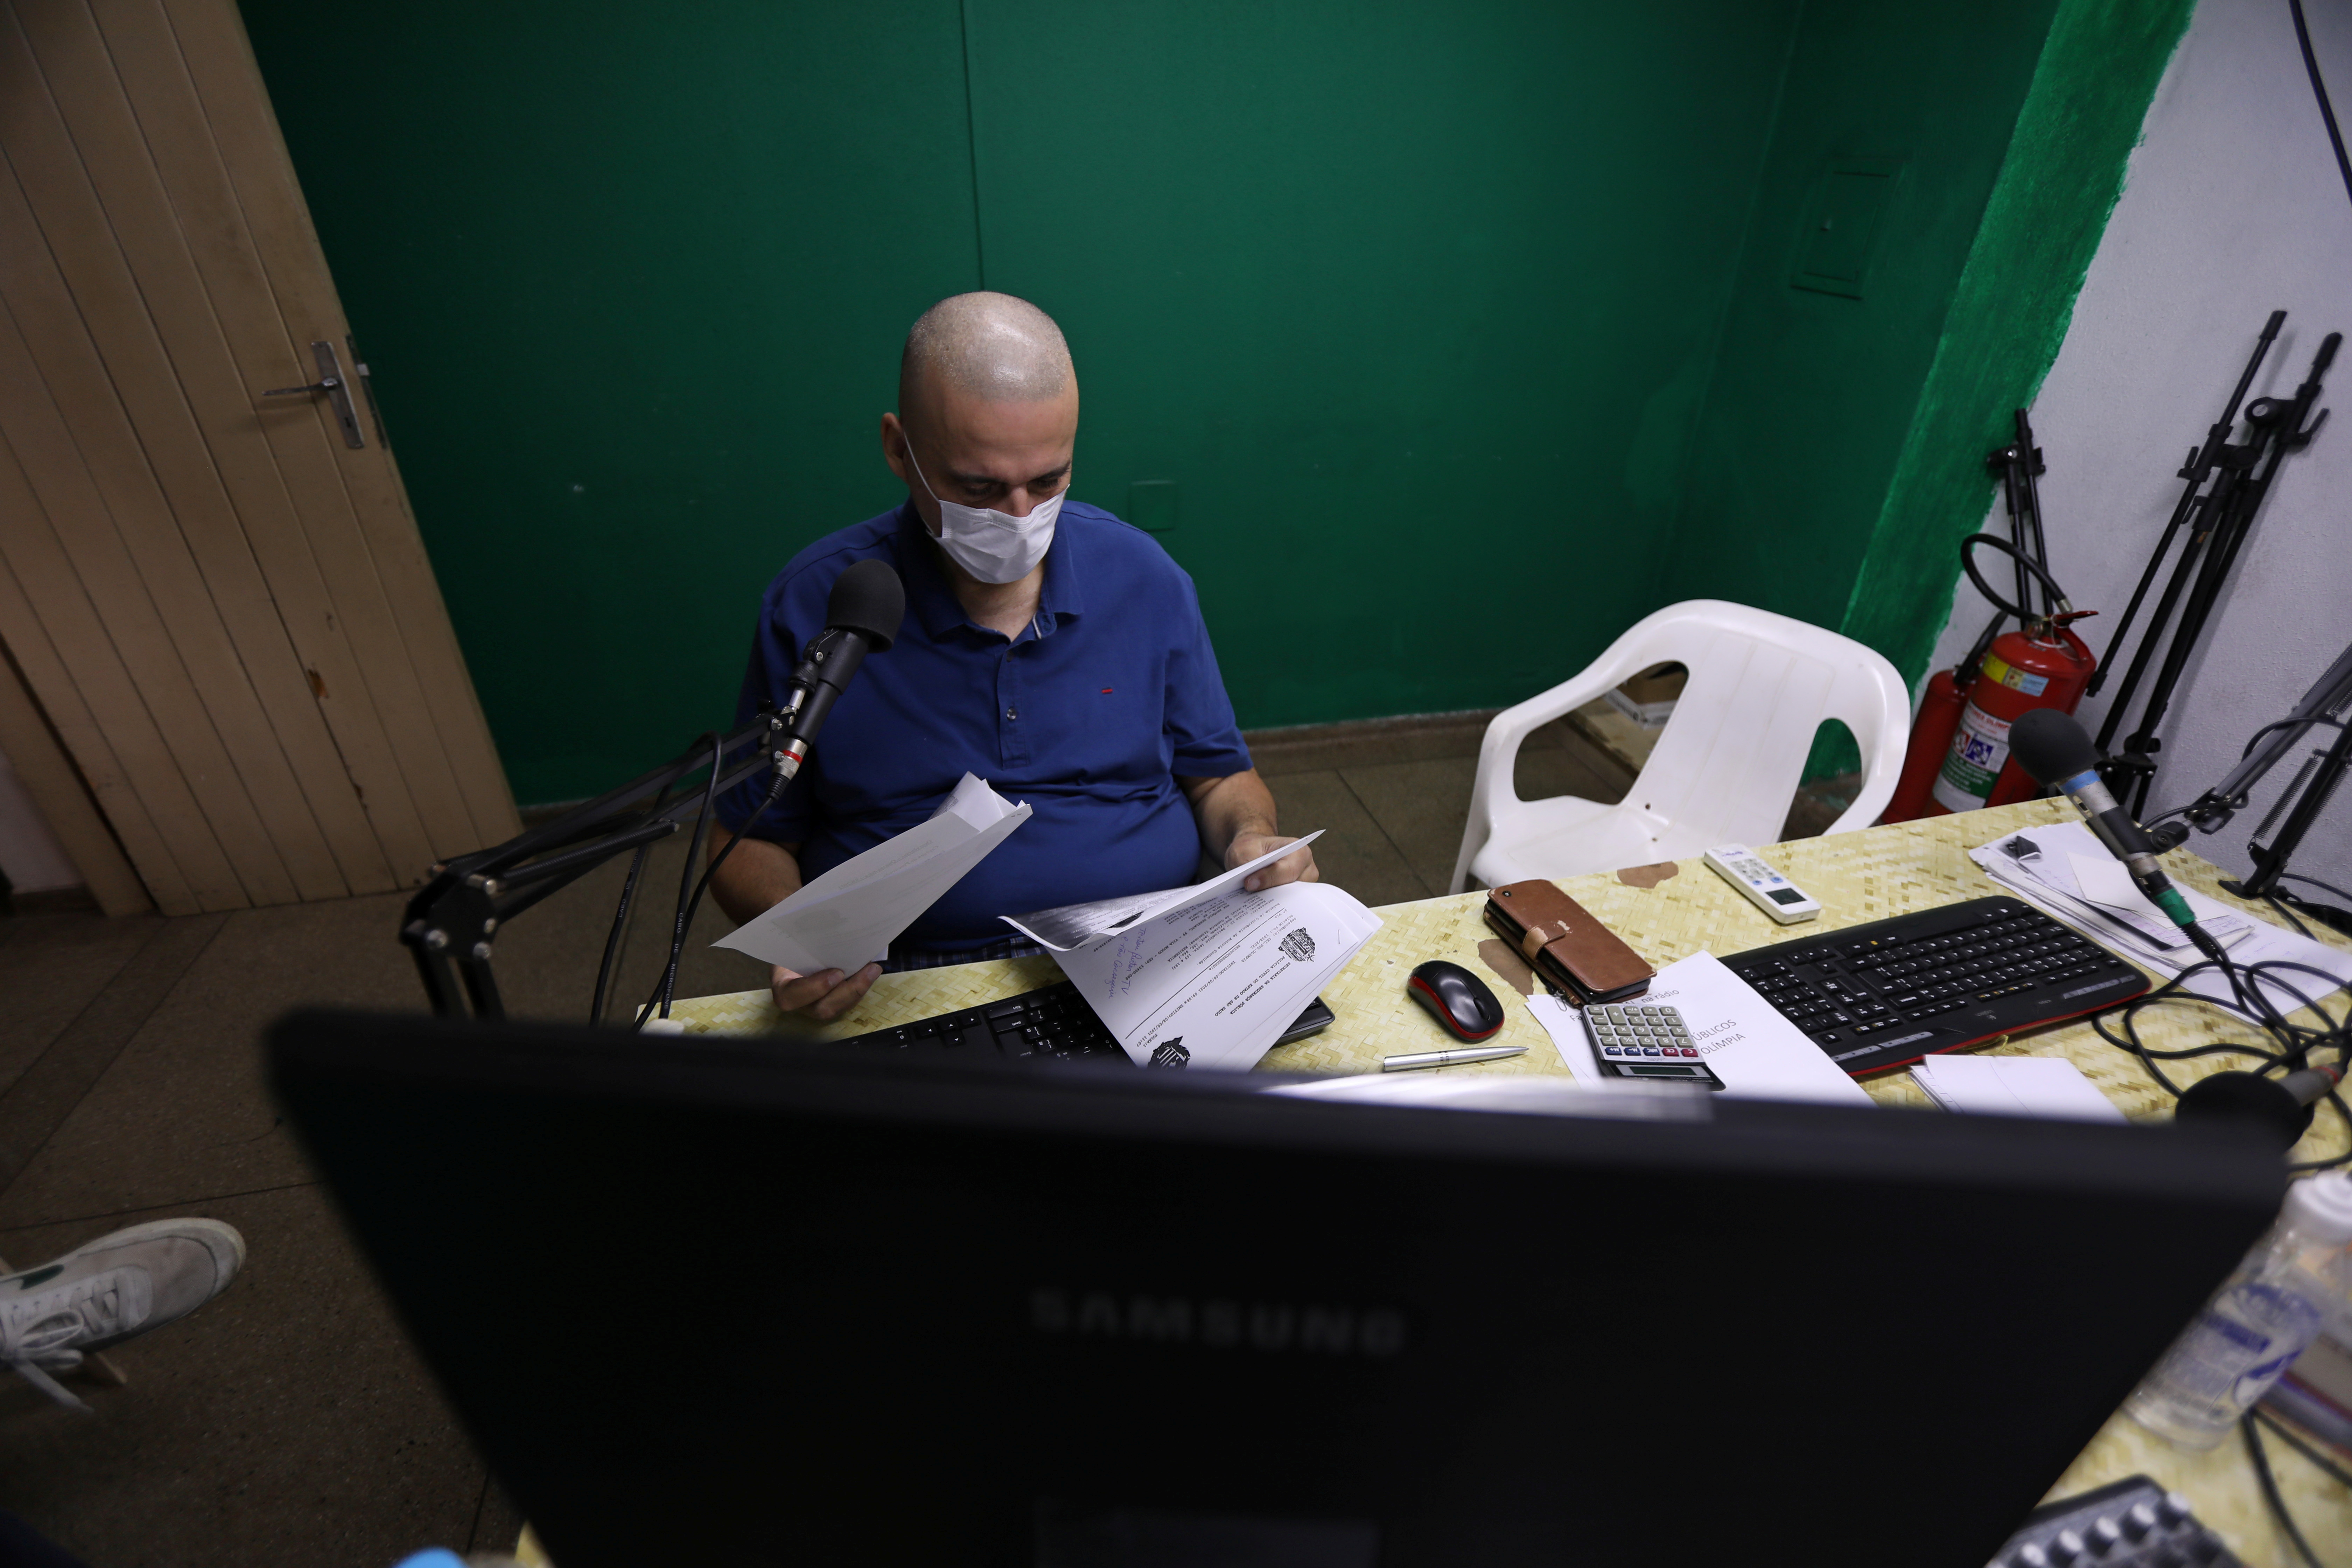 Jose Antonio Arantes, a local newspaper editor and radio host, who had his house been set on fire by a supporter of Brazil's President Jair Bolsonaro, is seen at his work desk amid the coronavirus disease (COVID-19) pandemic in Olimpia, Sao Paulo state, Brazil, June 9, 2021. REUTERS/Leonardo Benassatto